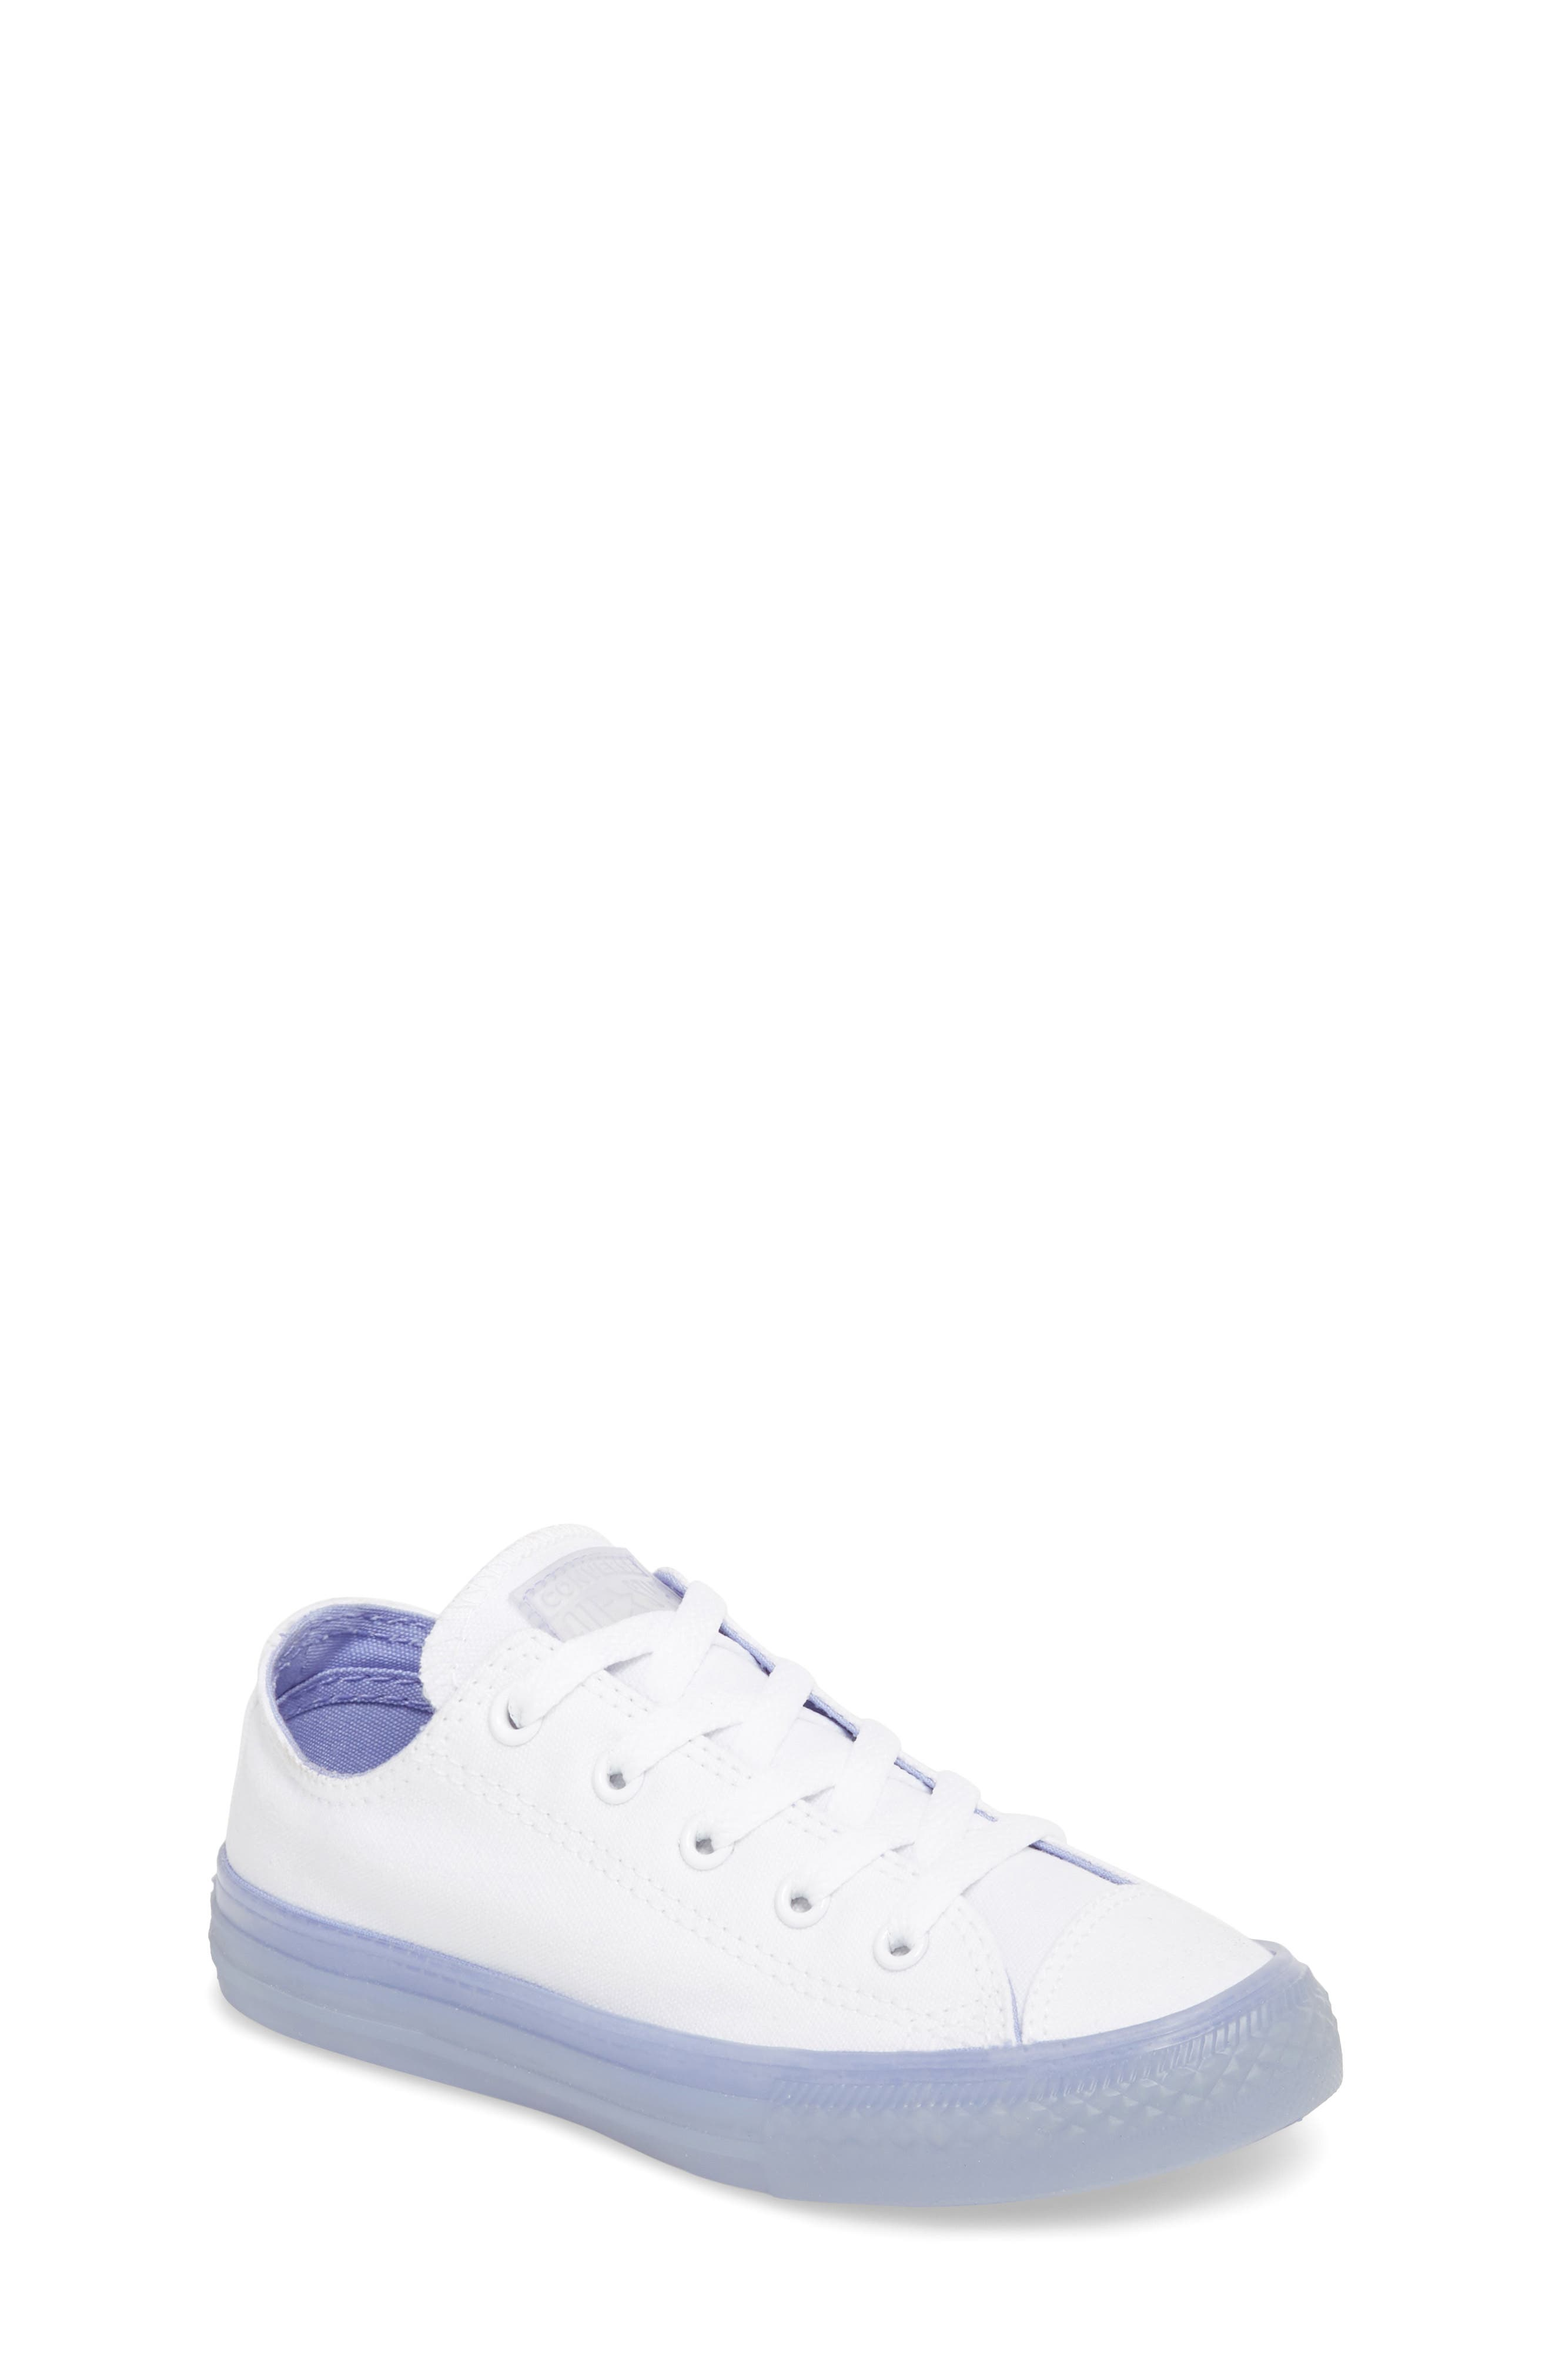 Chuck Taylor<sup>®</sup> All Star<sup>®</sup> Jelly Low Top Sneaker,                         Main,                         color, Purple